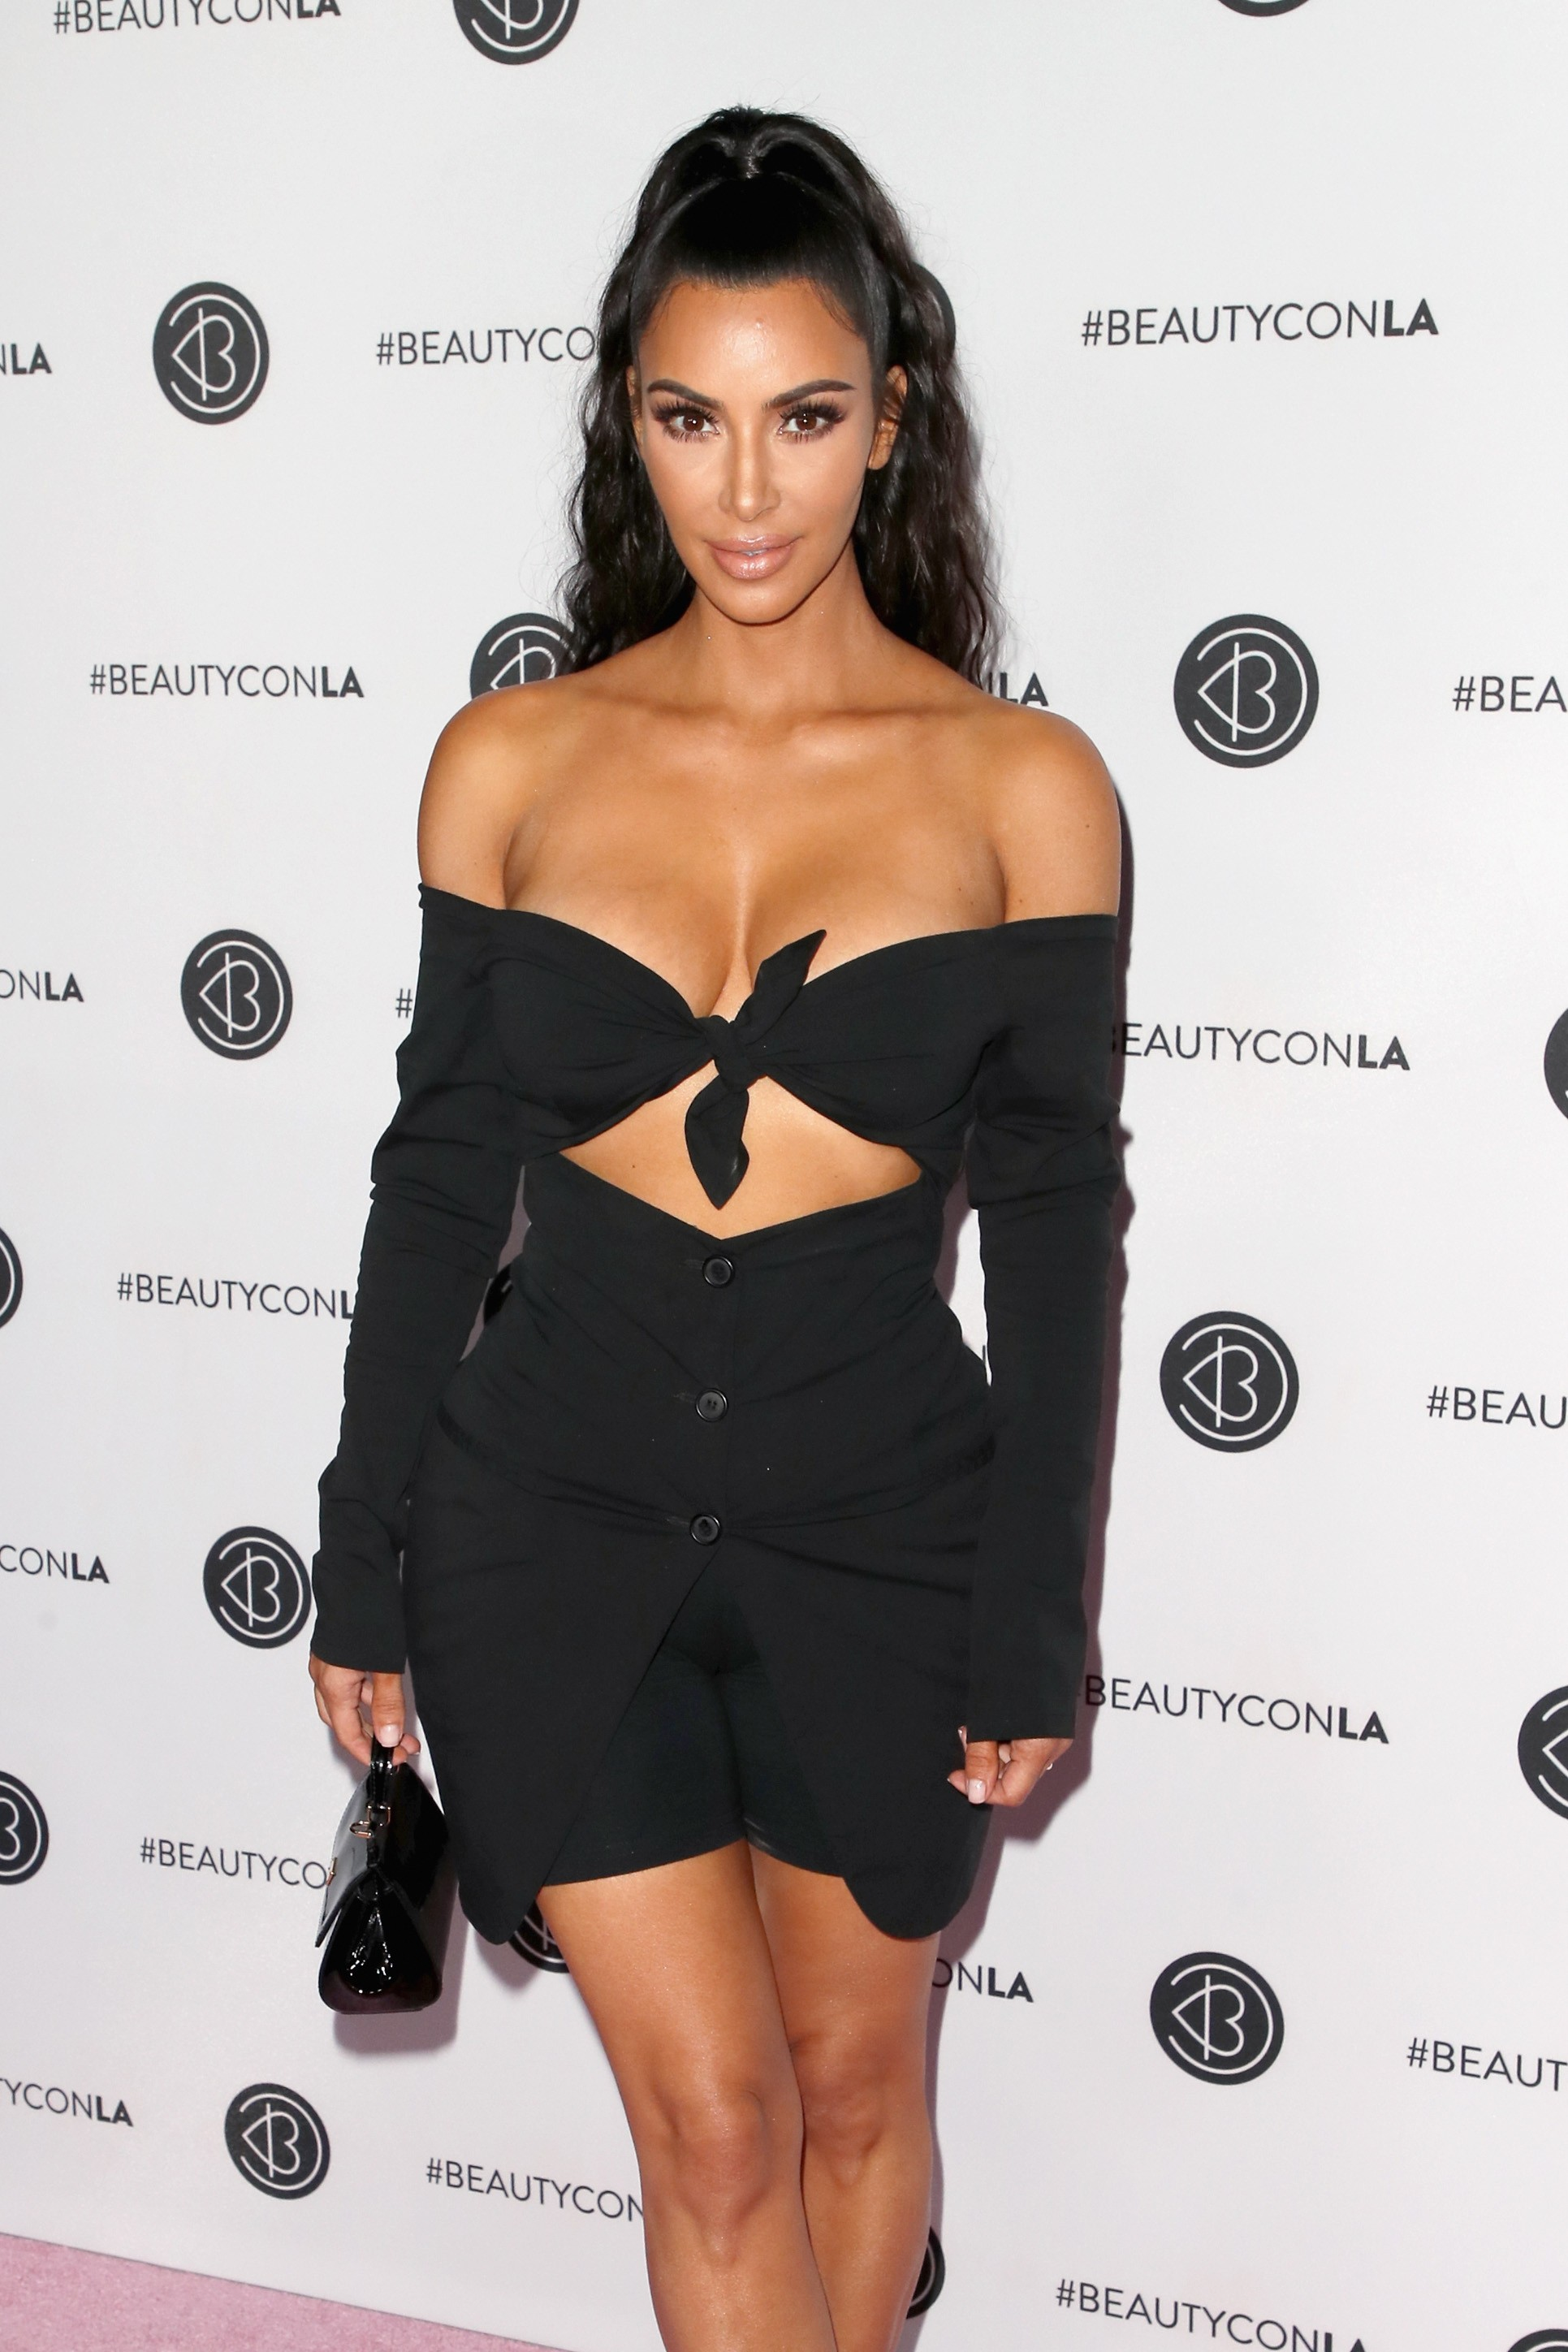 A socialite Kim Kardashian West no red carpet do evento de beleza em que compareceue em Los Angeles (Foto: Getty Images)